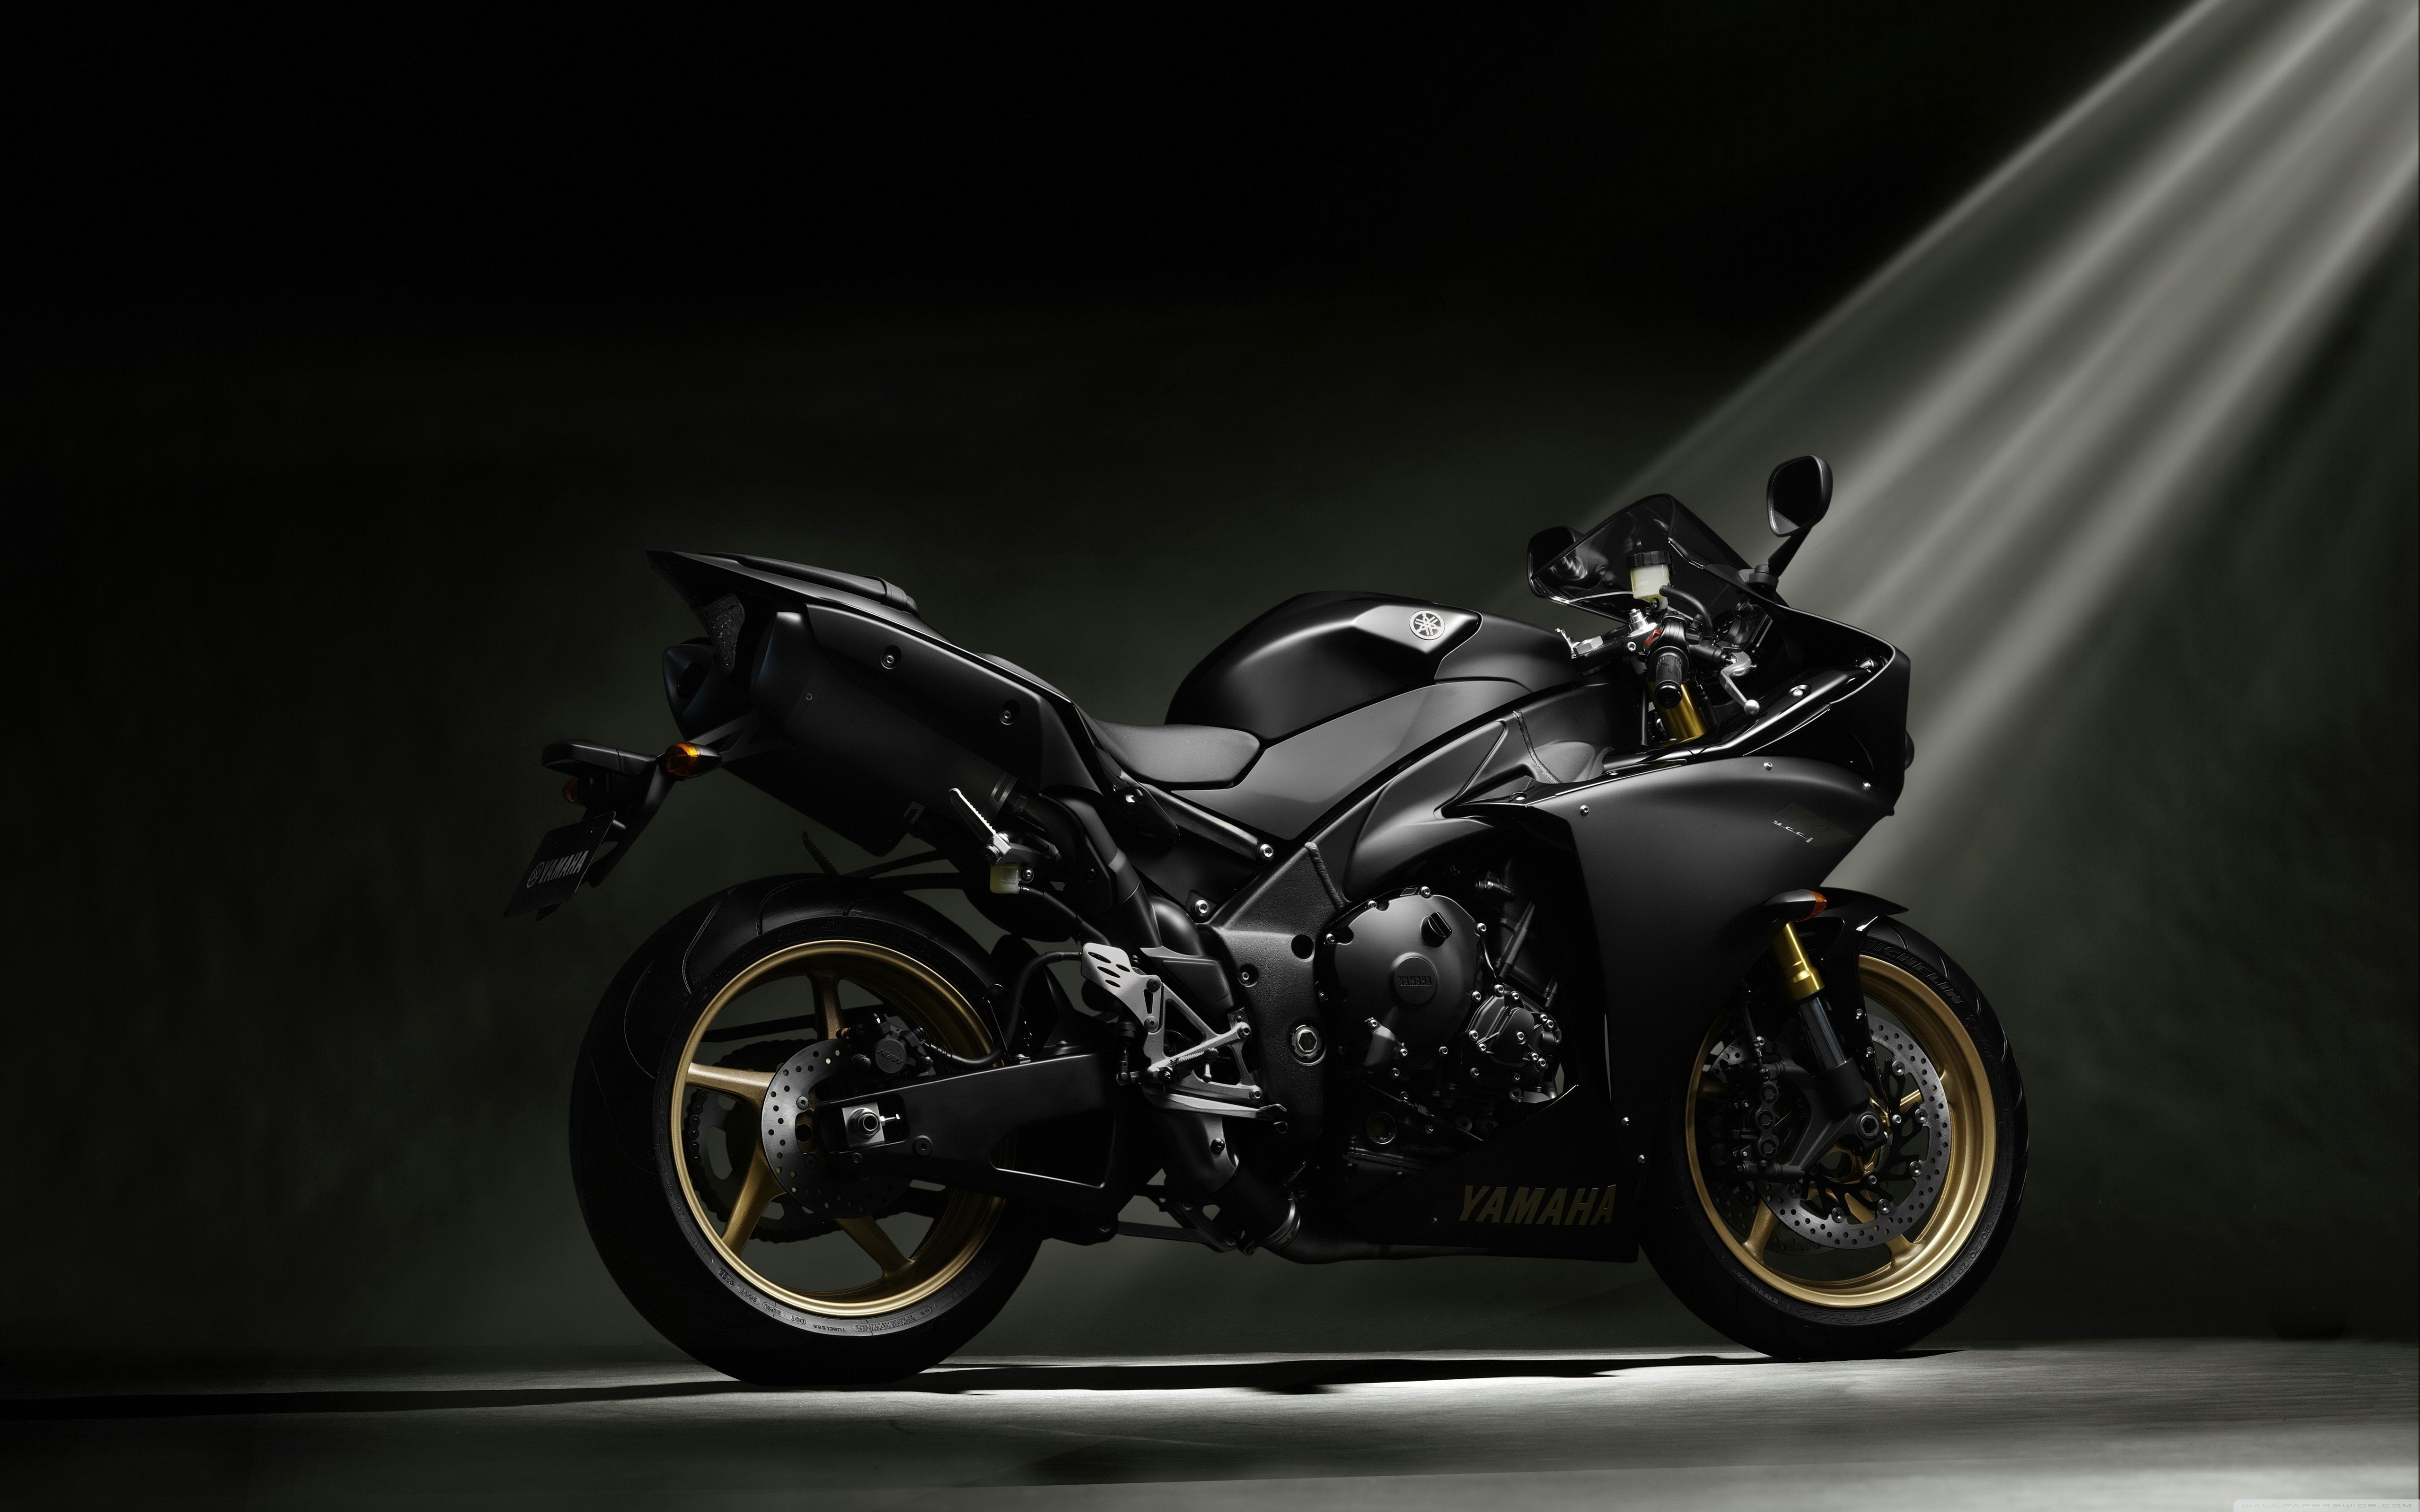 Black Motorcycle Wallpapers Top Free Black Motorcycle